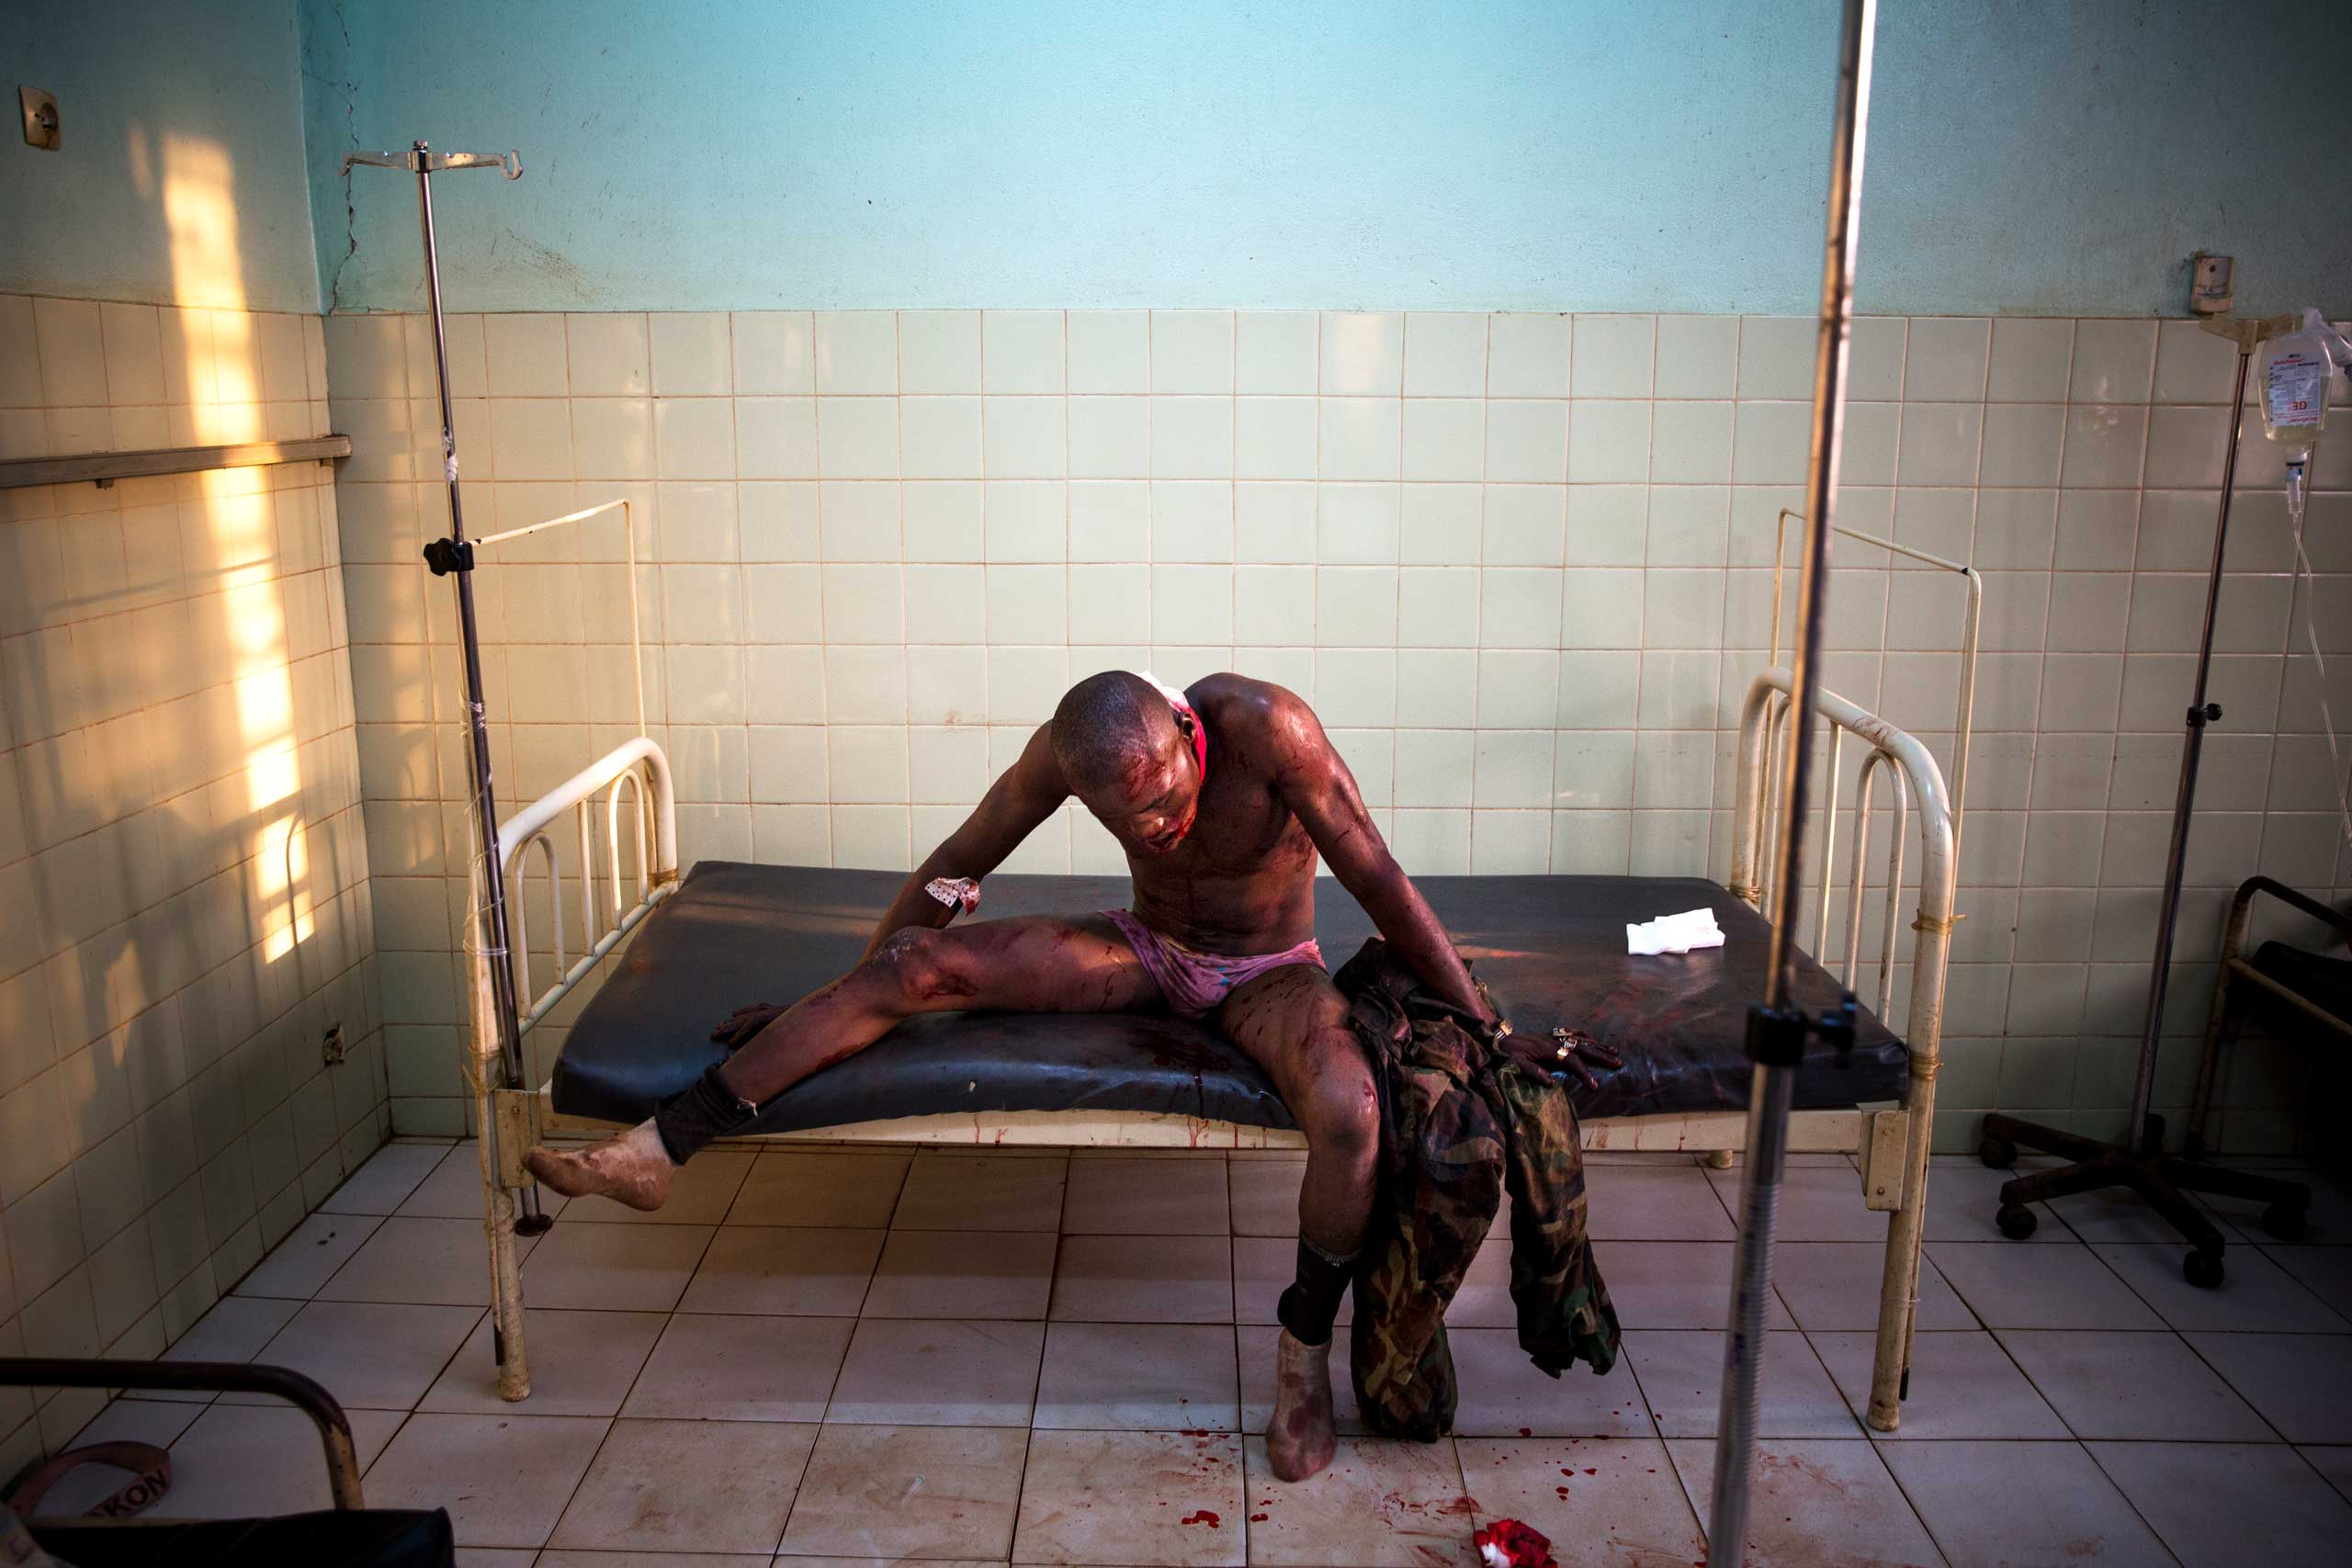 A soldier from the national army, wounded in fighting with Séléka rebels, waits to be treated at the Community Hospital. Bangui, Central African Republic. Jan. 31, 2014.